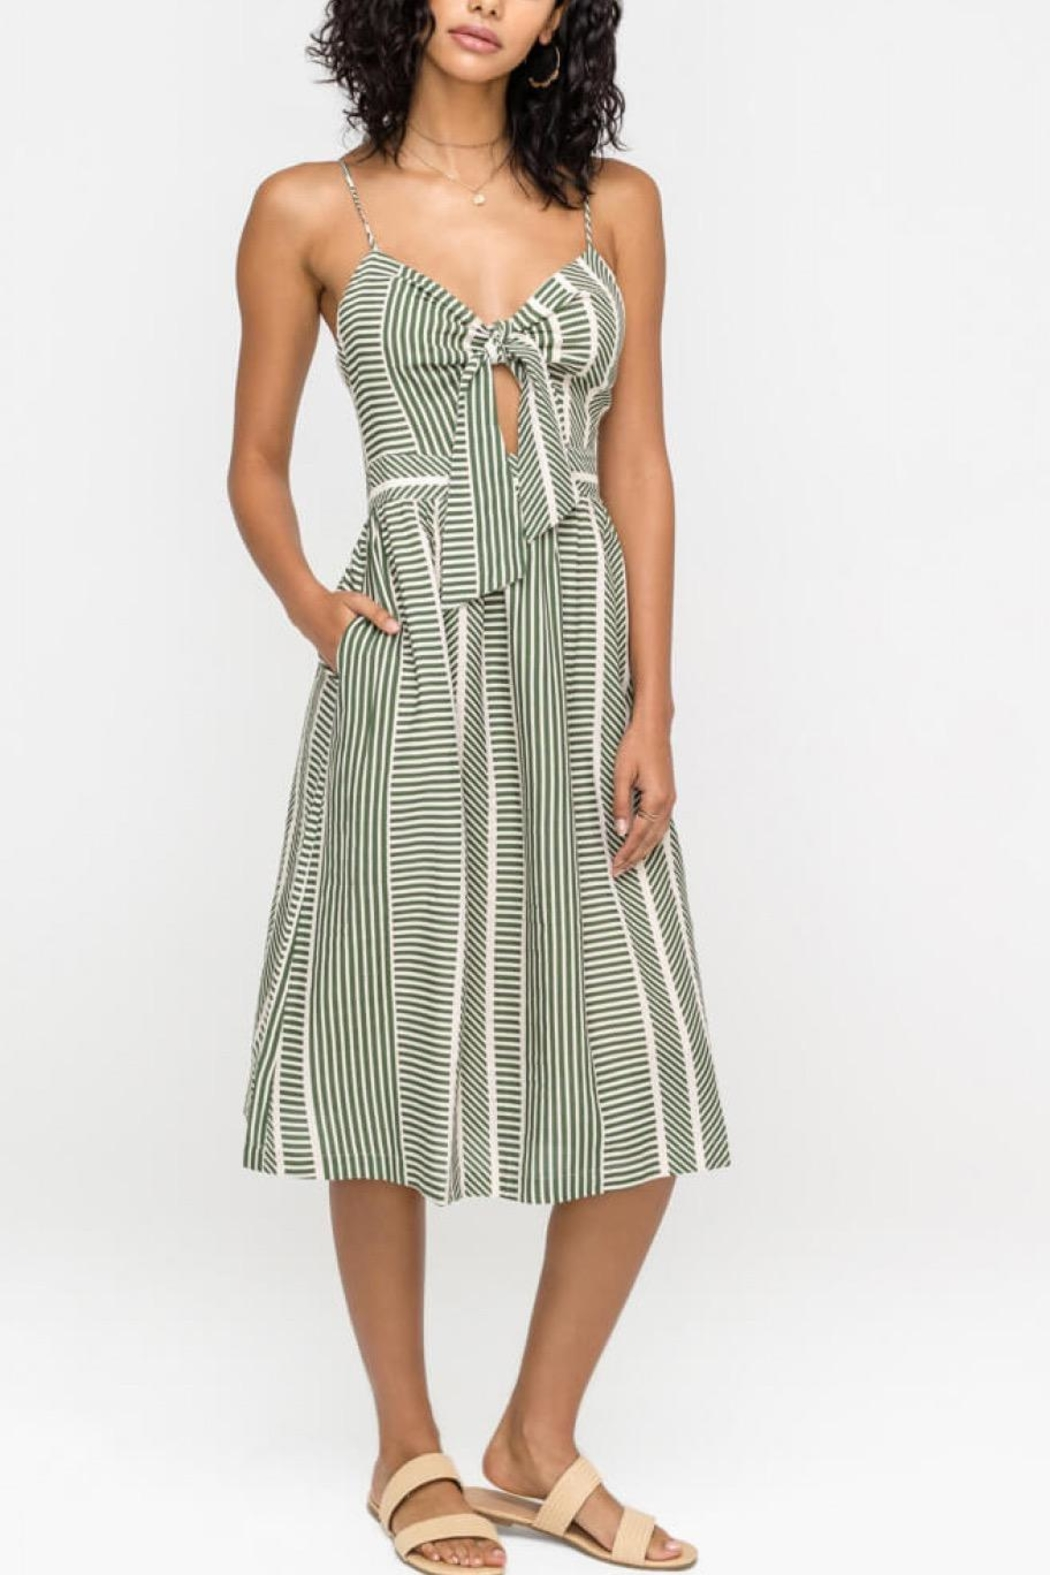 Lush Clothing  Front-Tie Midi Dress - Front Full Image